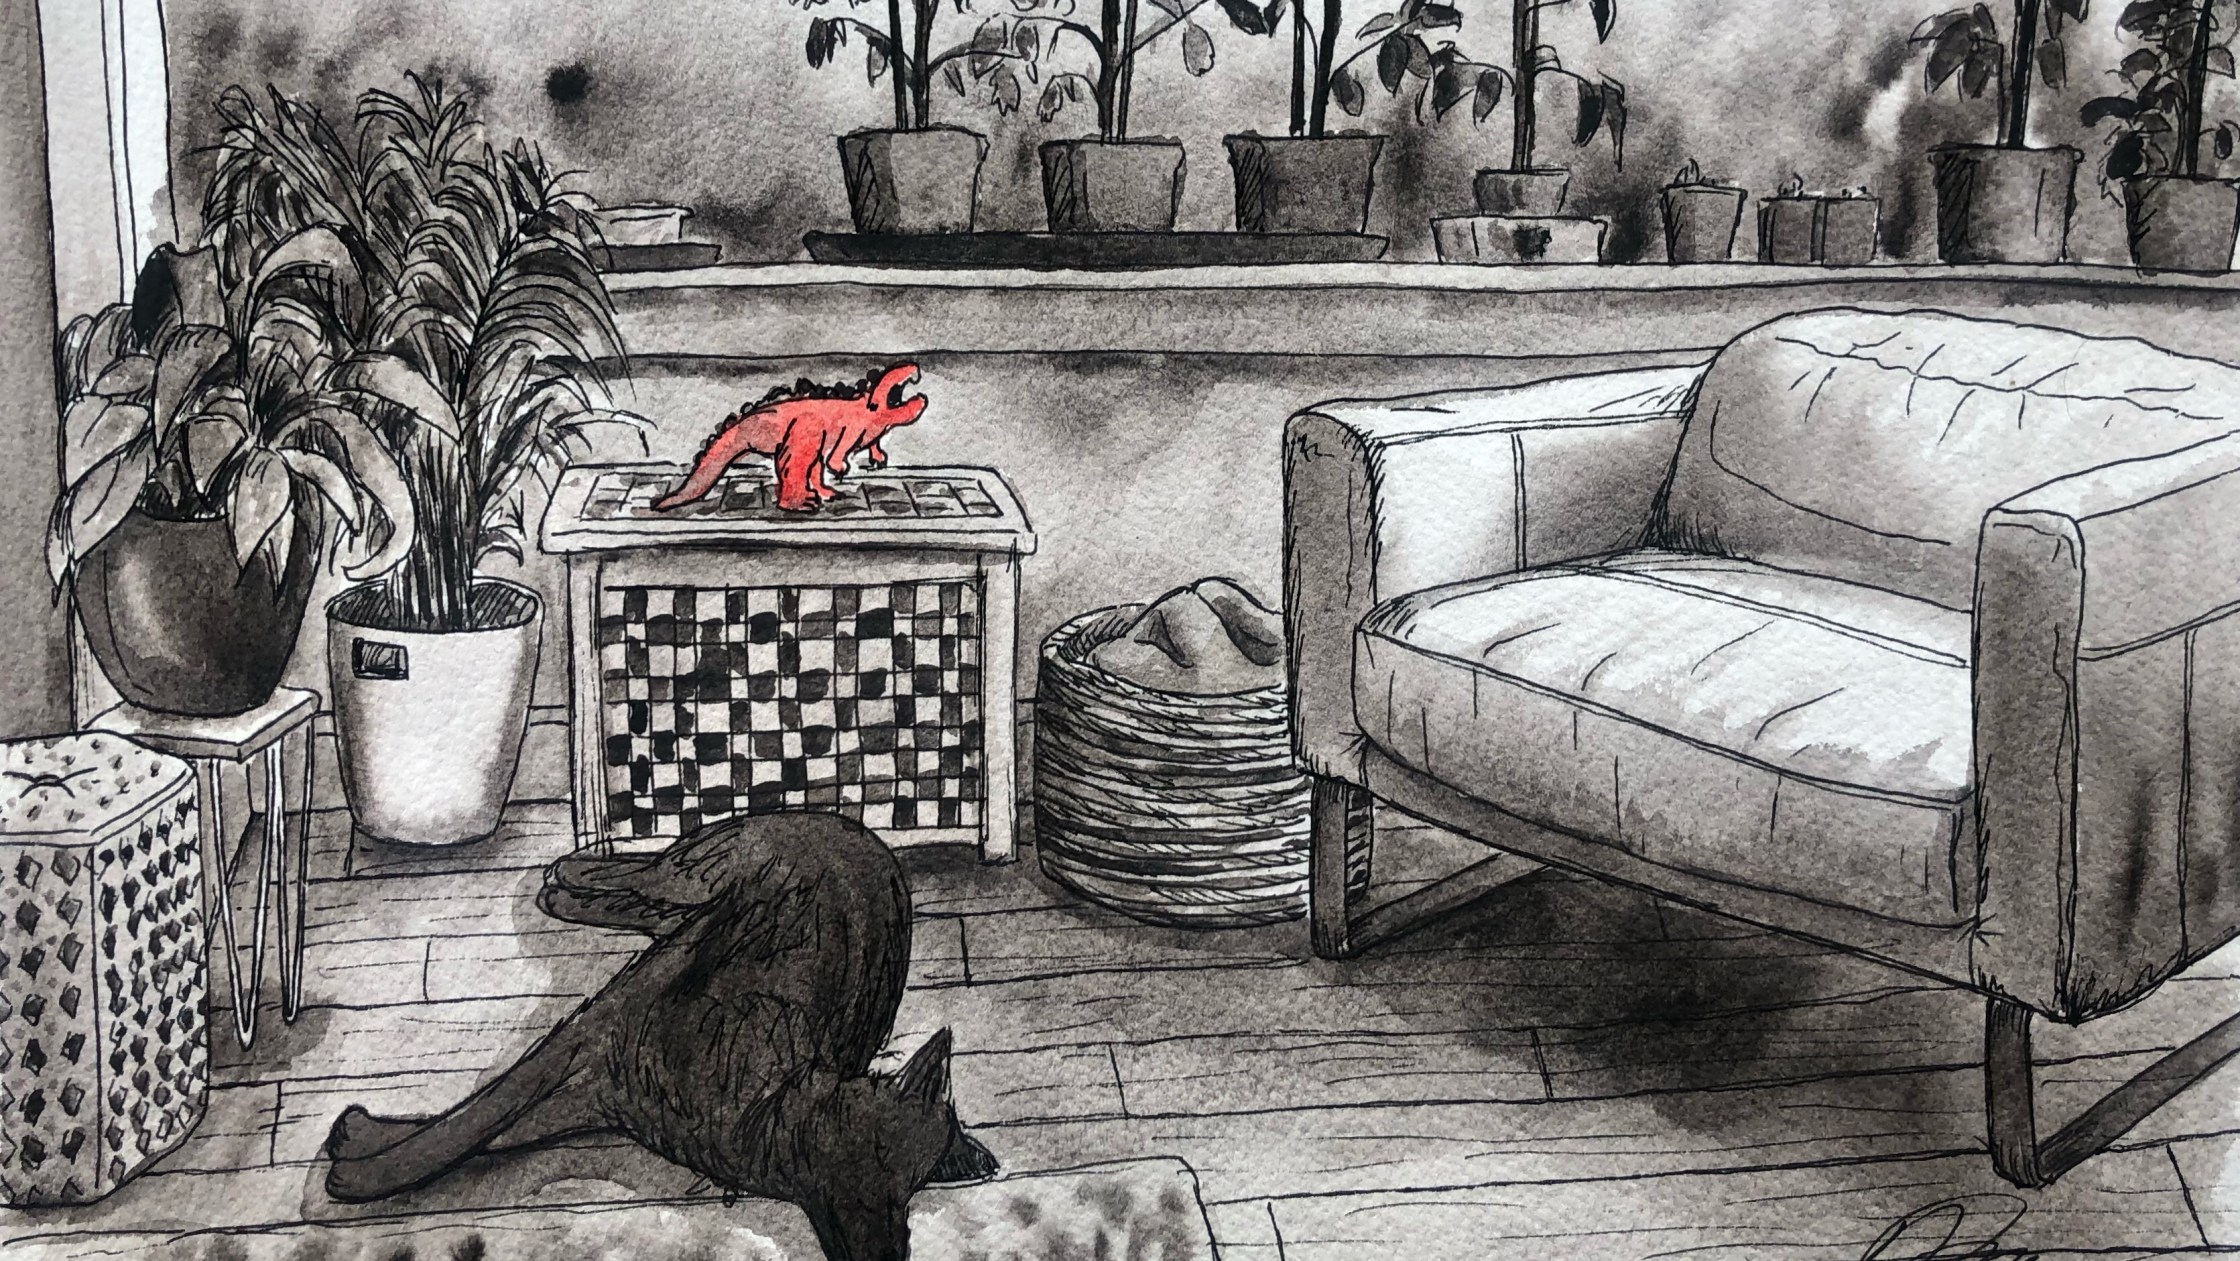 Illustration of living room with tomato plants and dog.